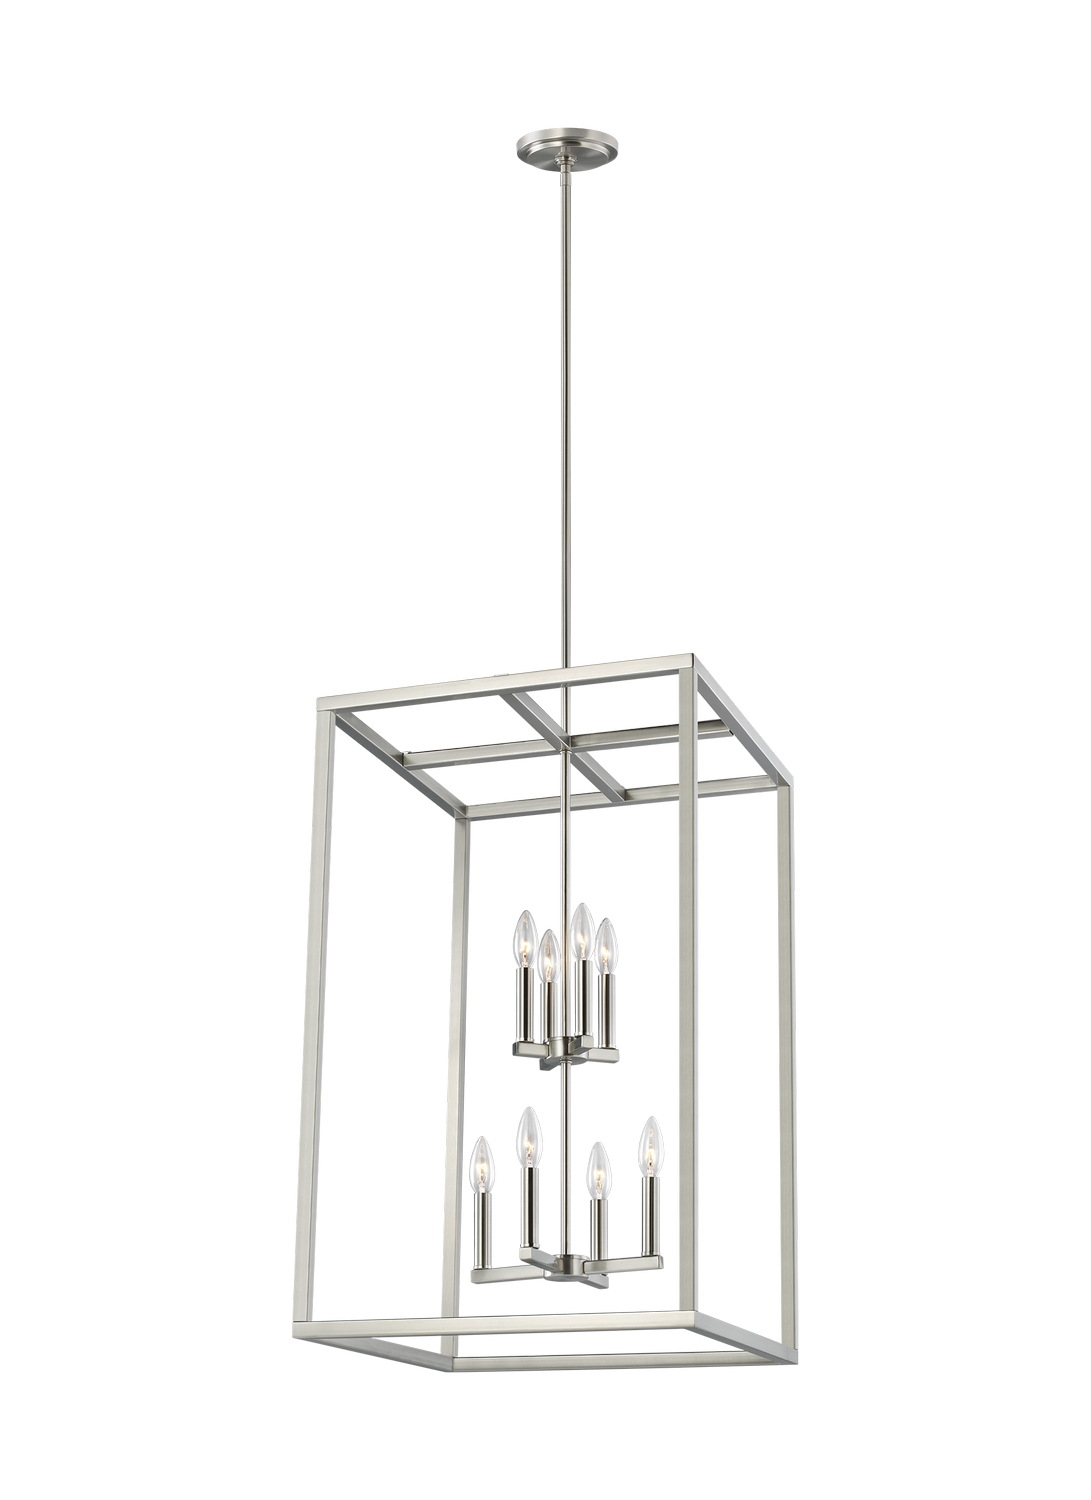 Eight Light Hall Foyer Pendant from the Moffet Street collection by Seagull 5134508 962